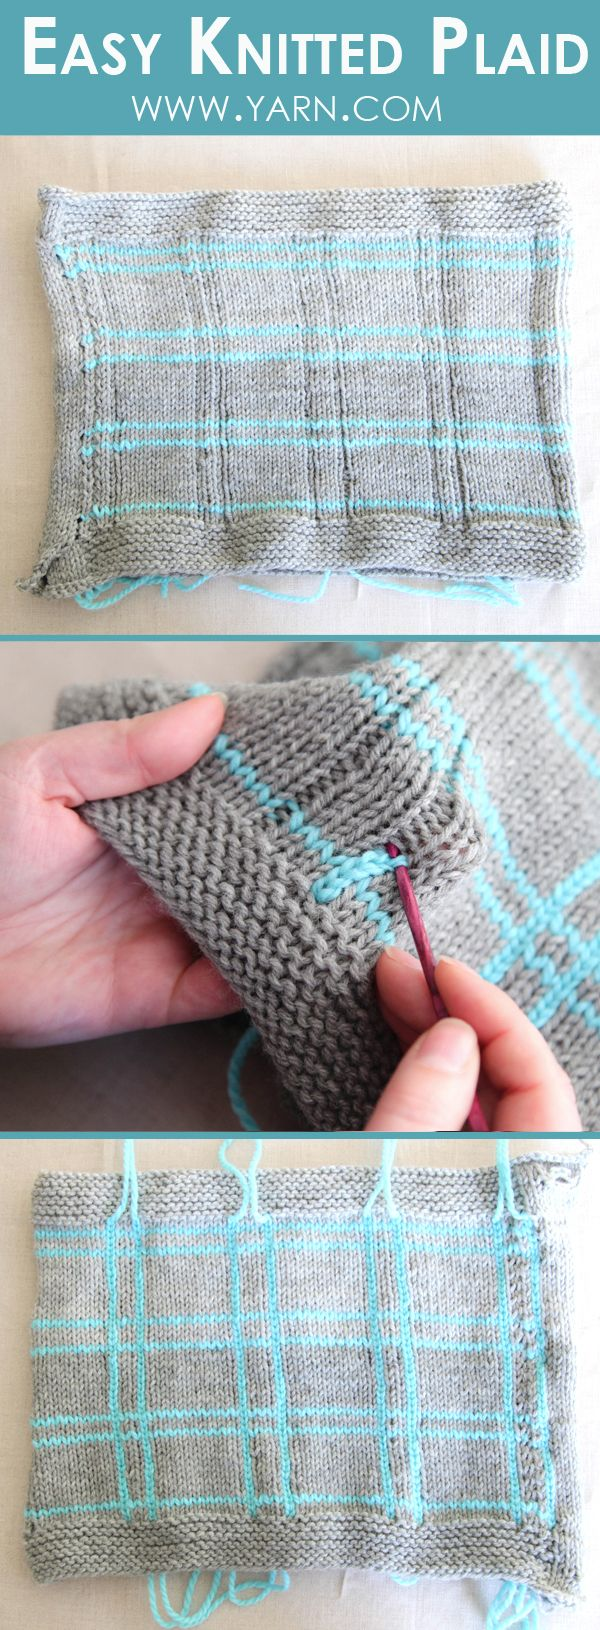 Technique | Create easy knitted plaid with this simple technique!